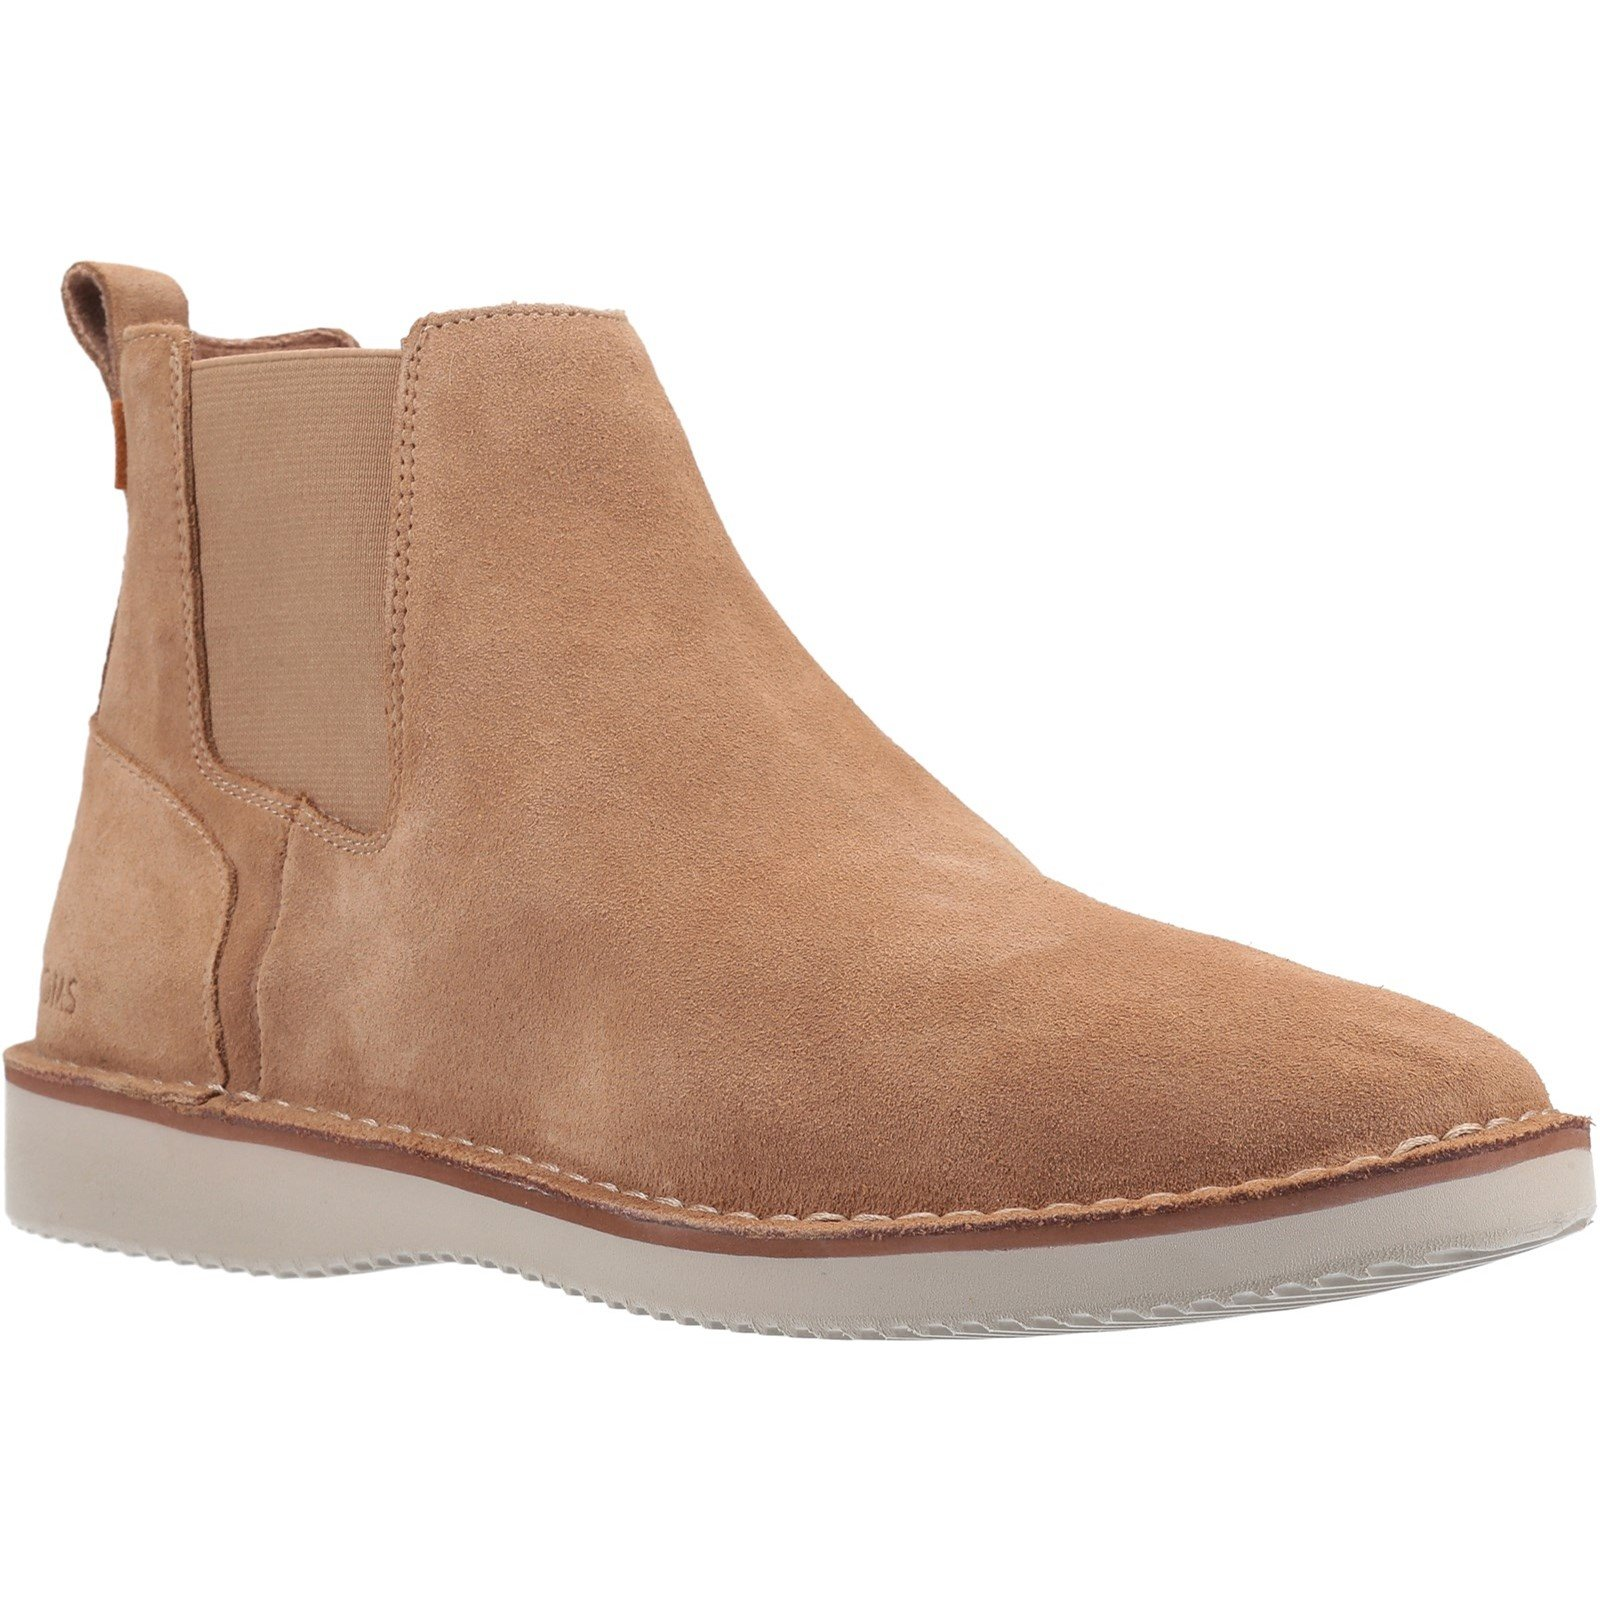 TOMS Men's Skyline Lace Up Boot Toffee 31608 - Toffee 10